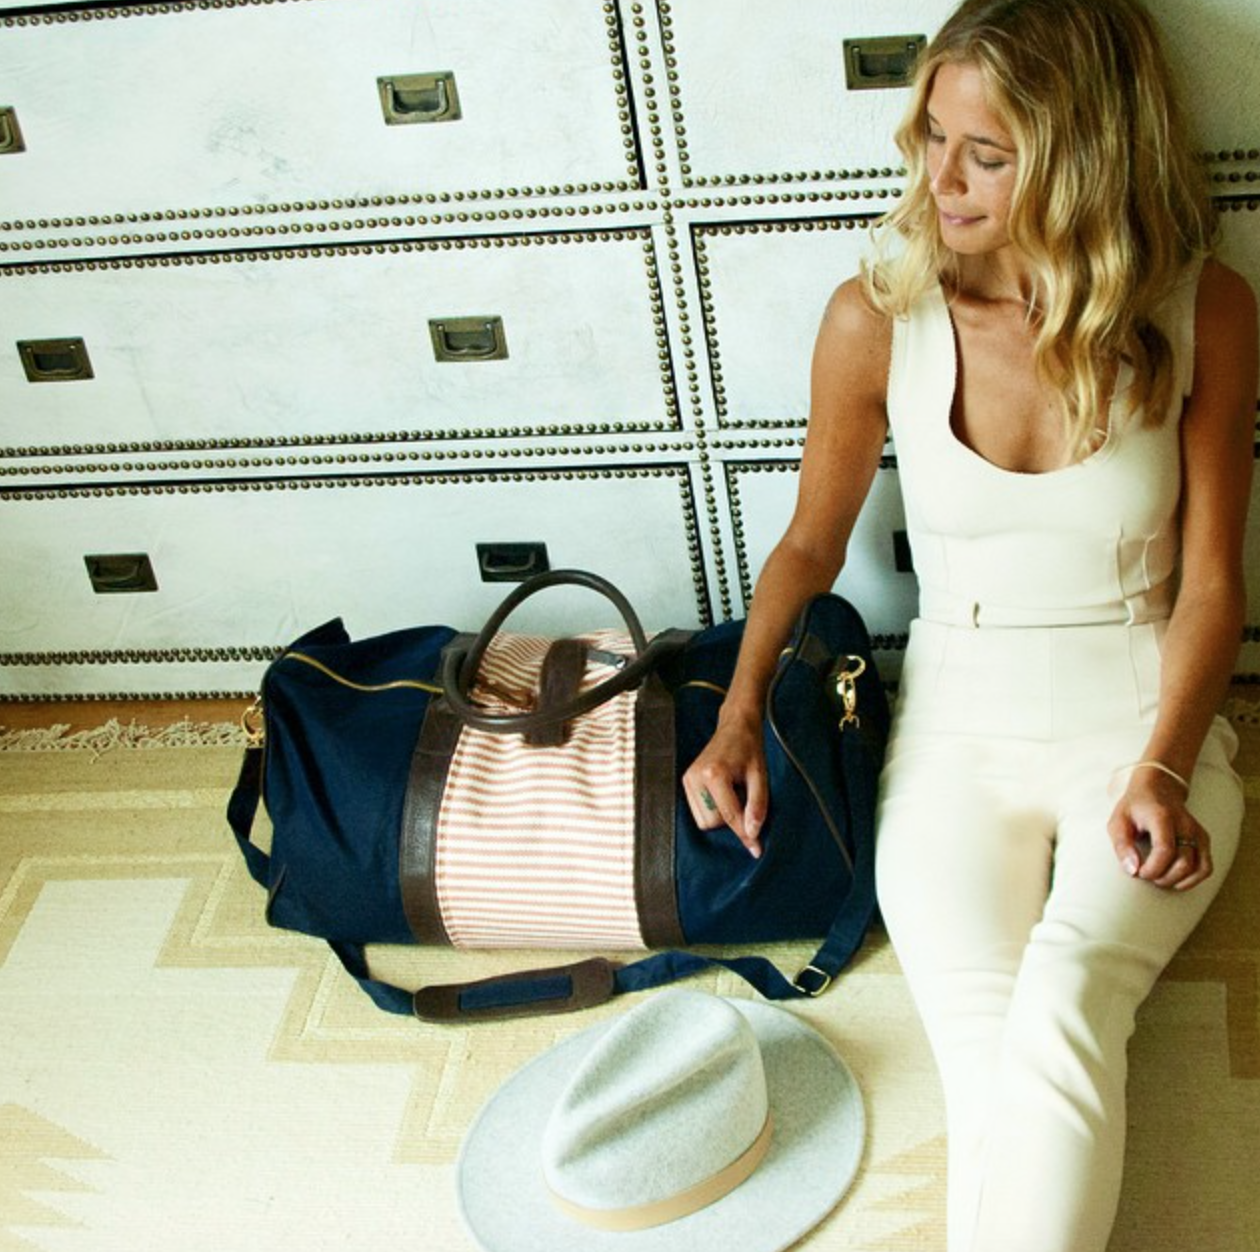 @musexcarly shows us some of her favorite travel styles with #Miscere  #weekender #jetsetgo #travelstyle #airportstyle #interchangeable